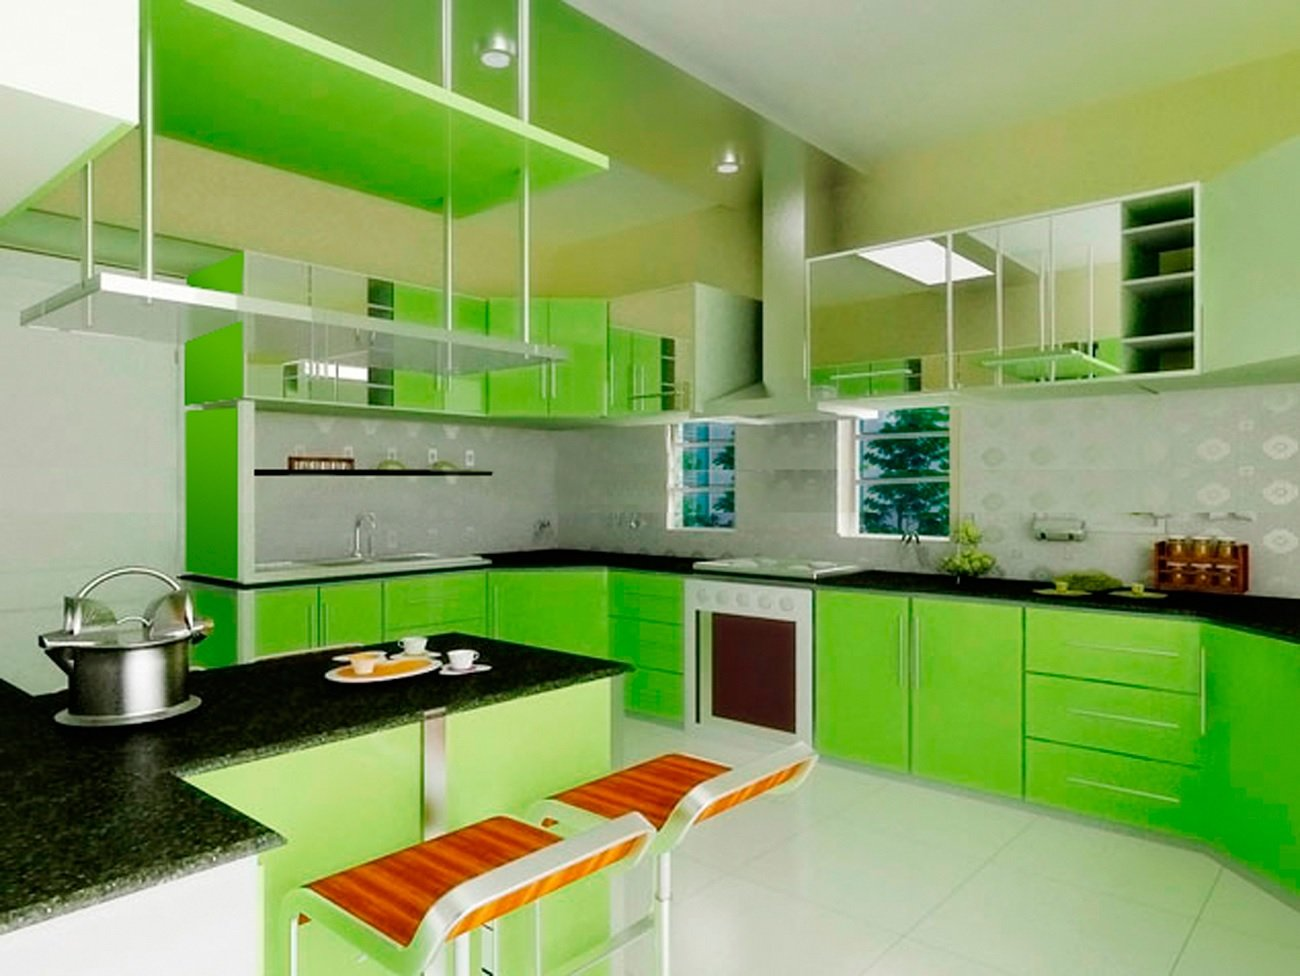 Green kitchen cabinet image